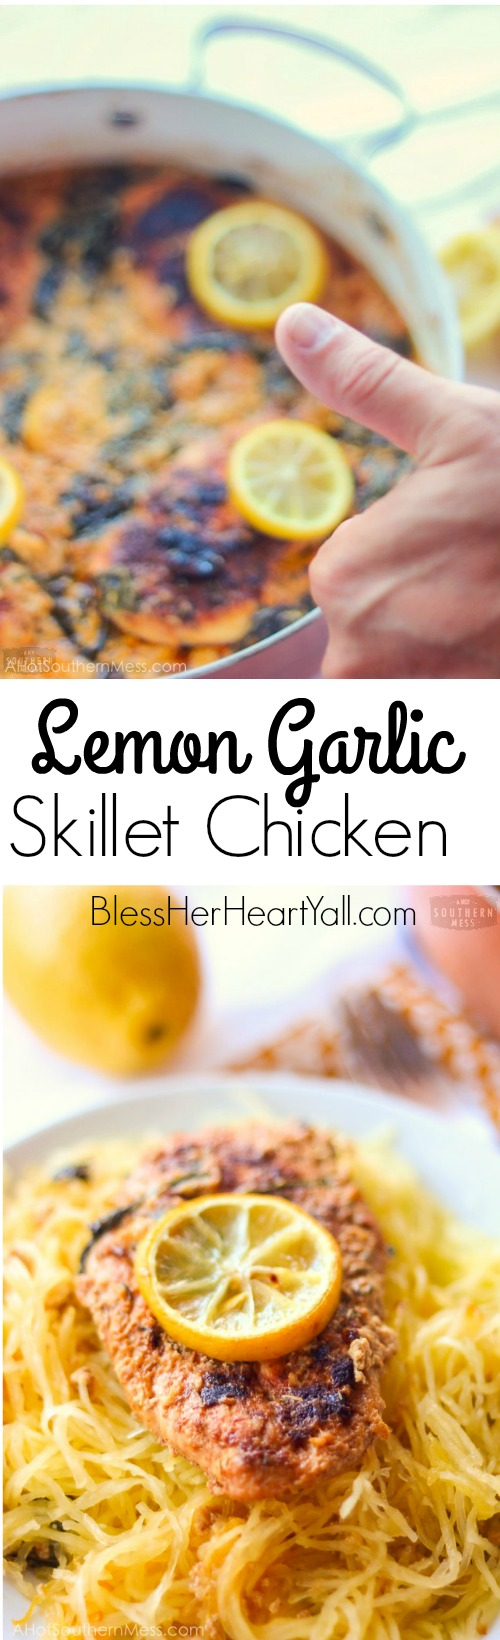 This lemon garlic skillet chicken combines, lemon, butter, and herbs to make a quick, light, and tasty meal! www.blessherheartyall.com